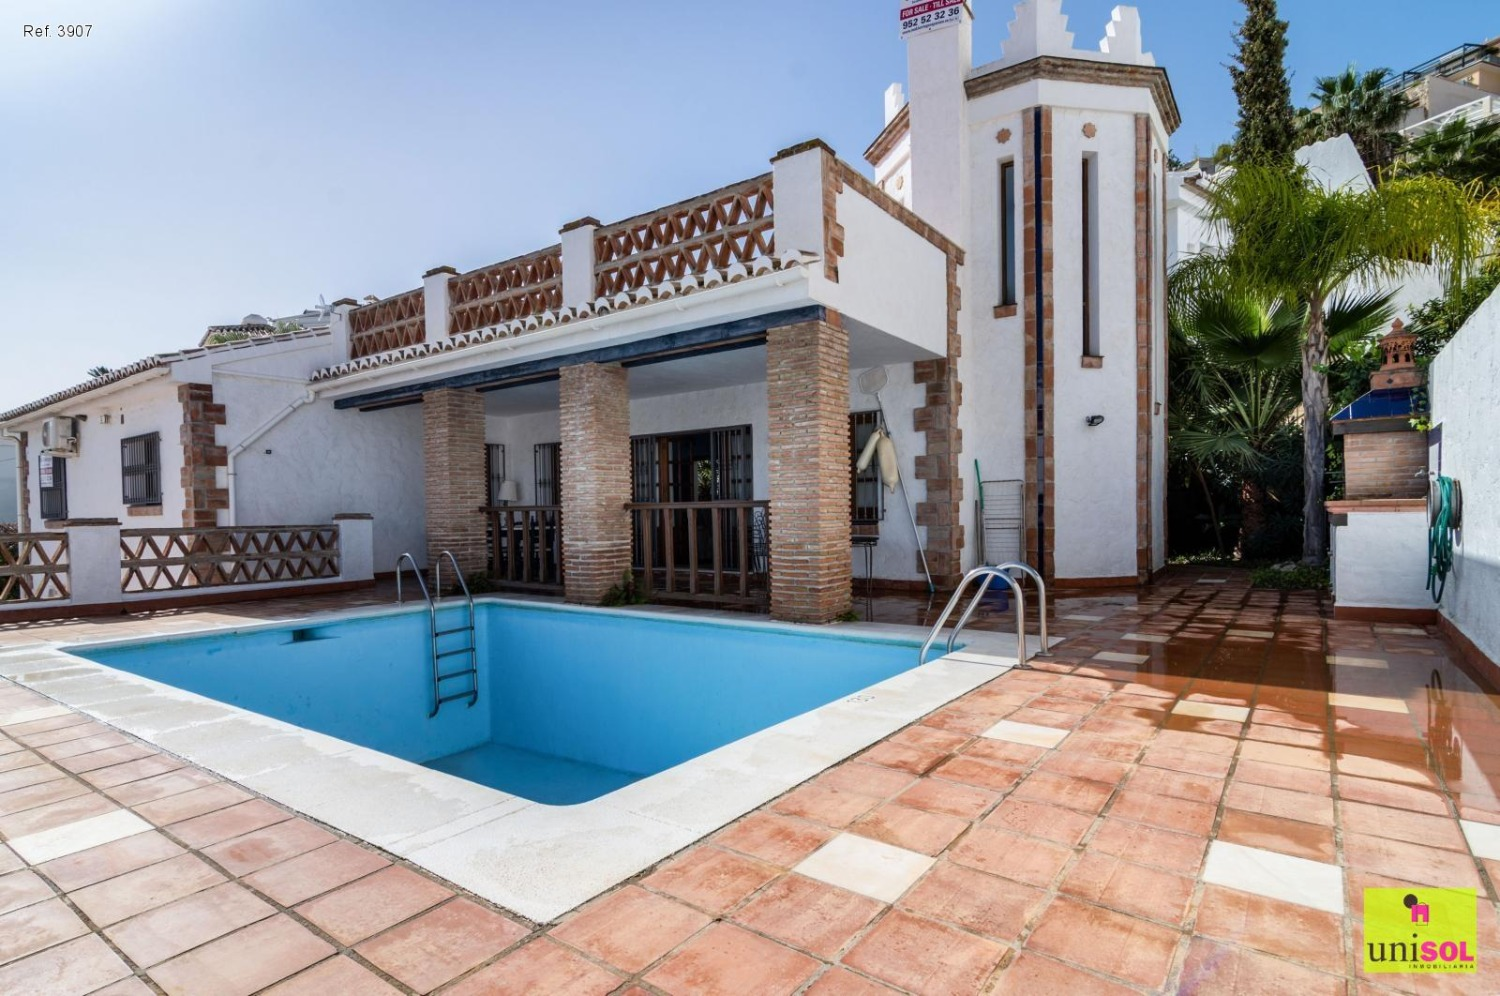 Detached villa located in Punta Lara, overlooking the sea